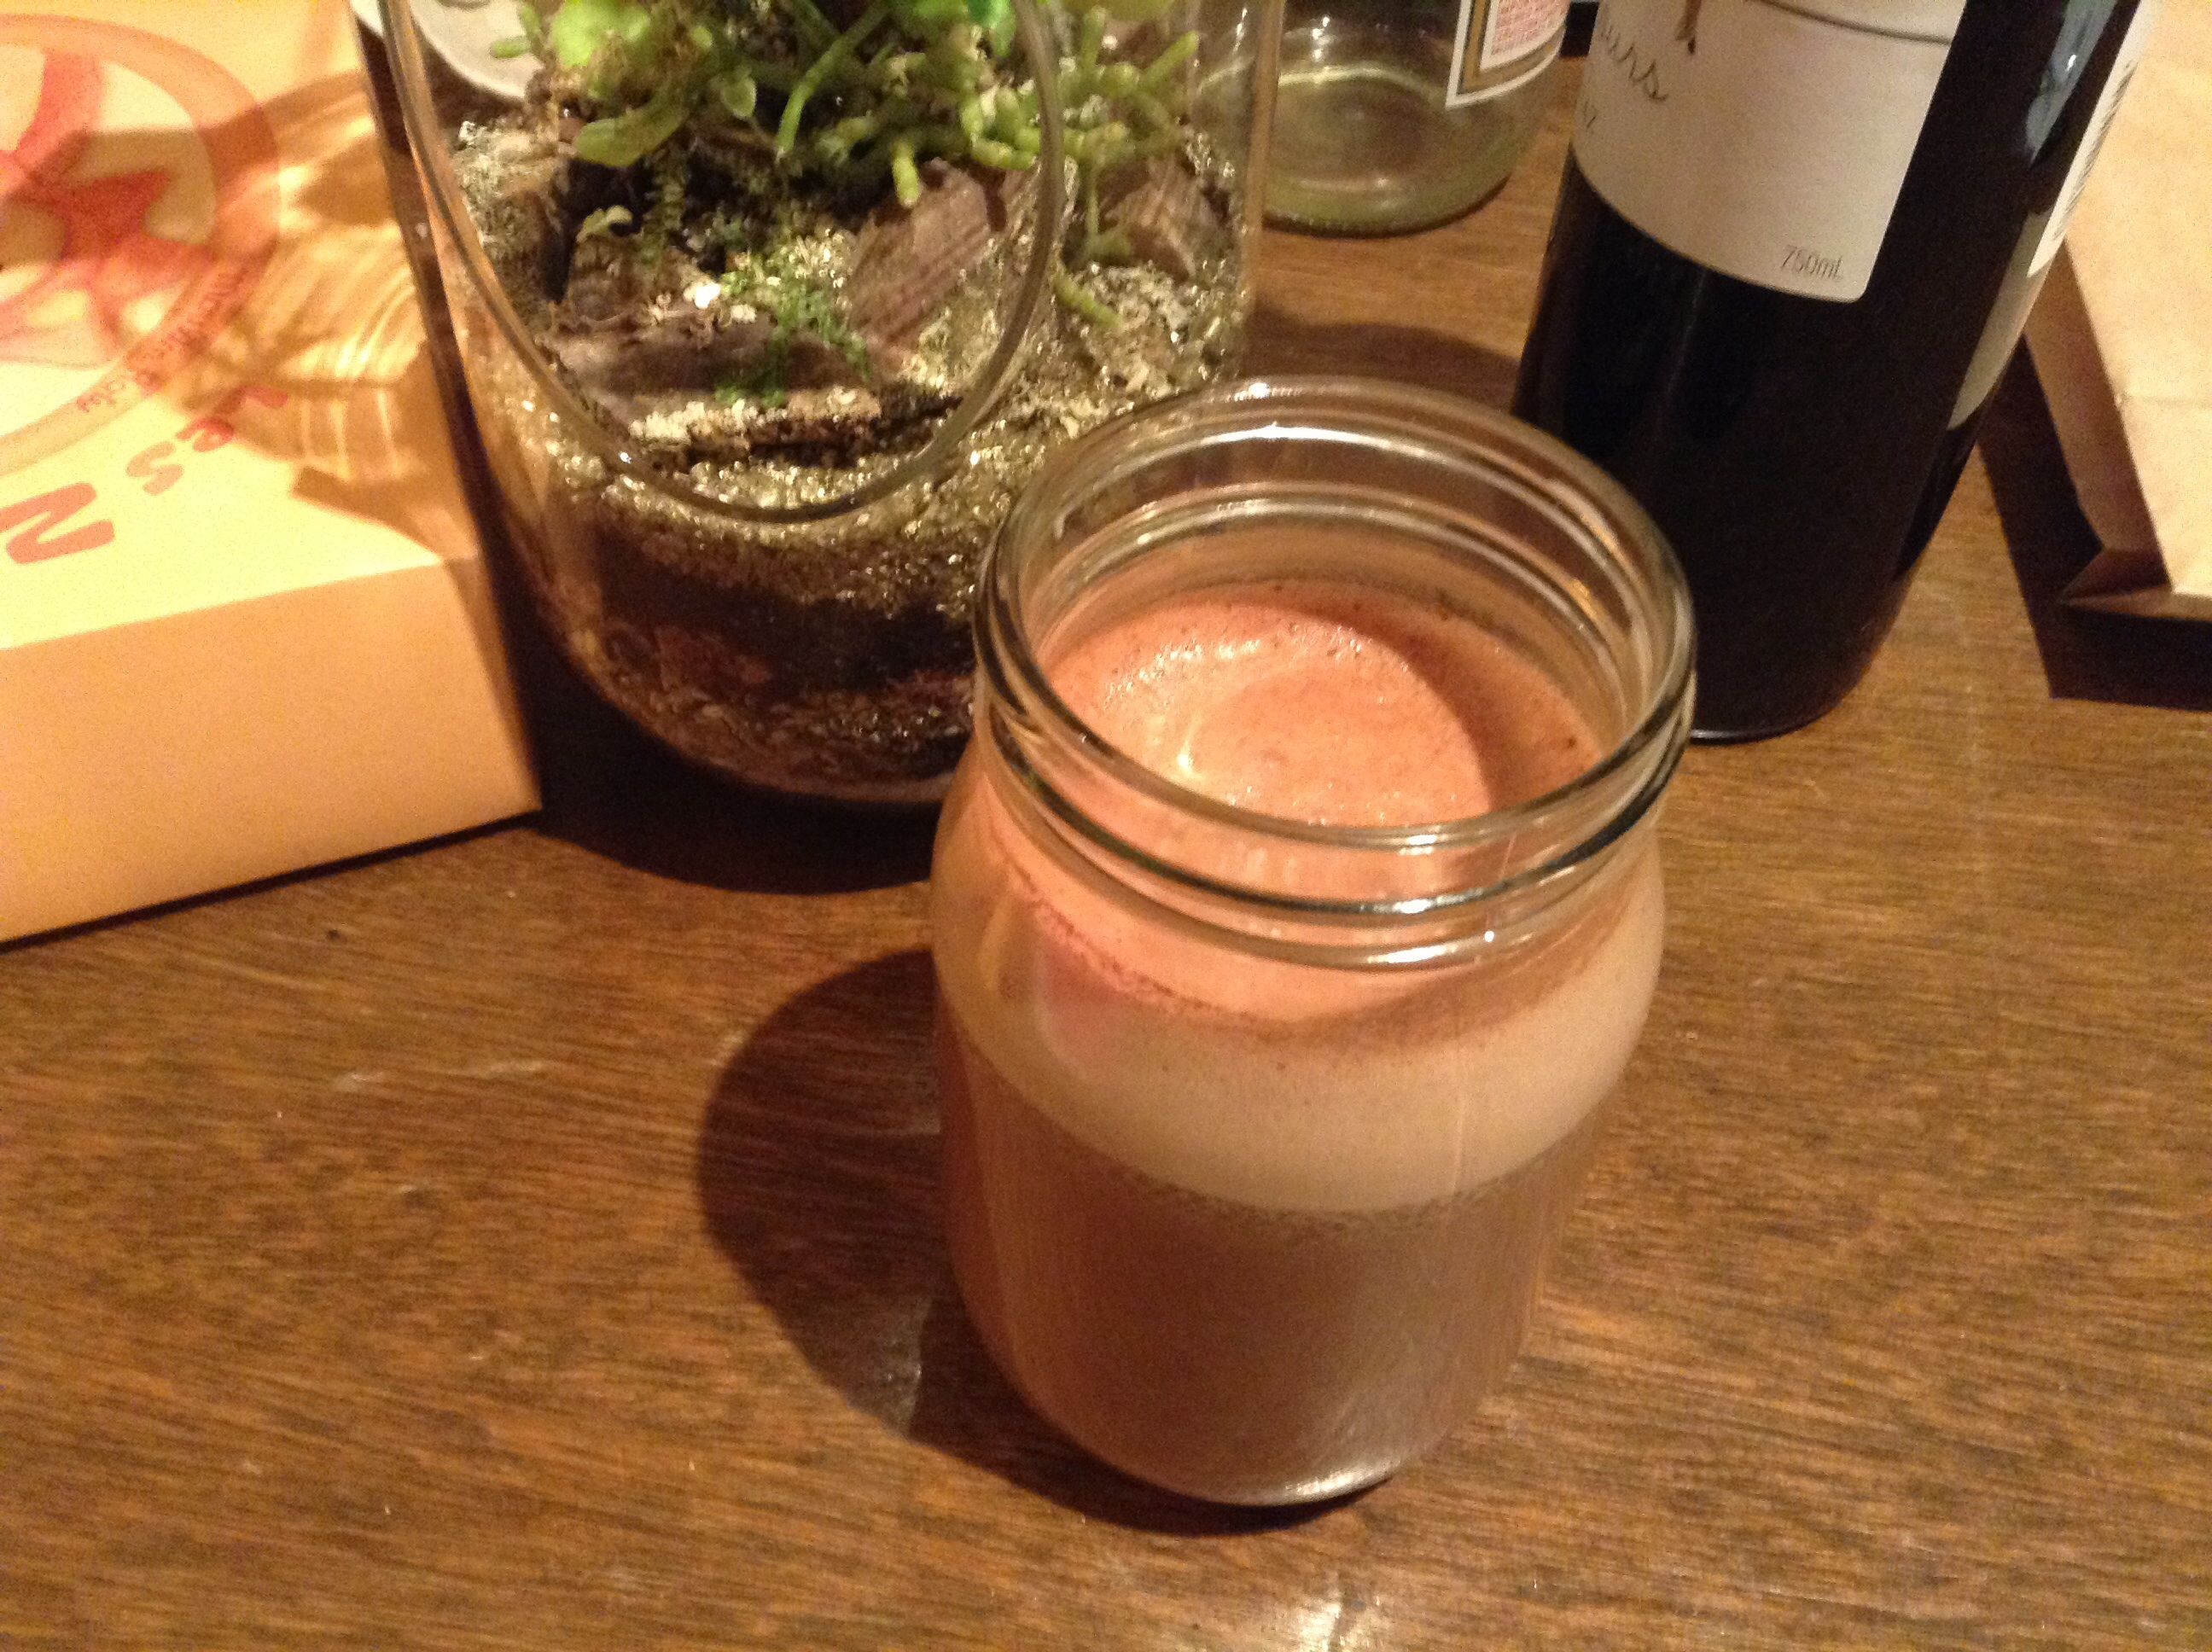 Jar of chocolate milk in front of terrarium